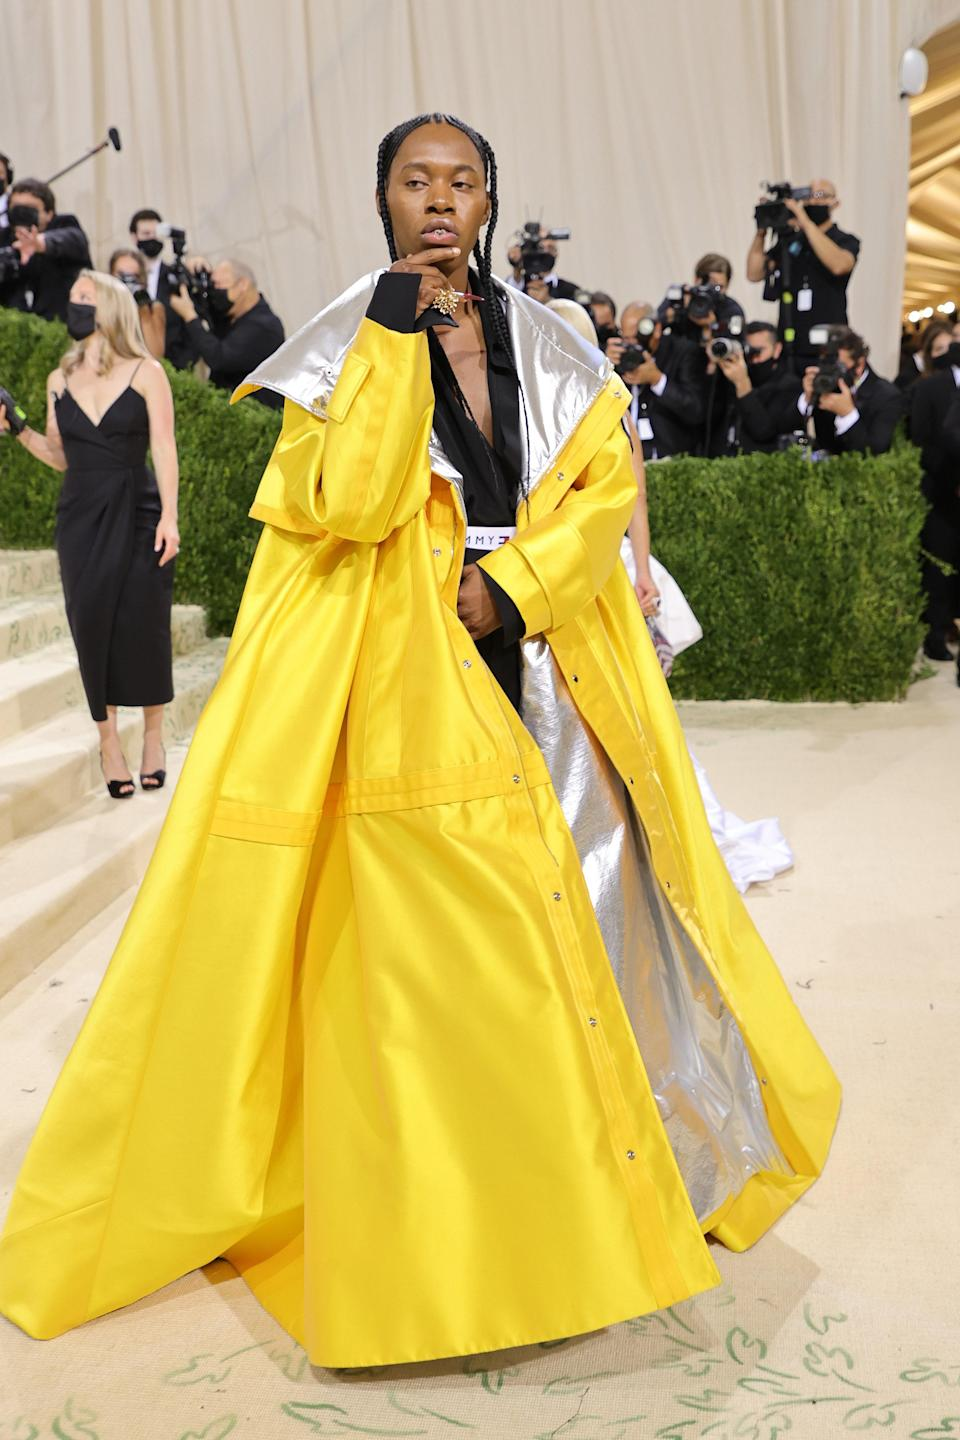 Playwright Jeremy O. Harris's Tommy Hilfiger look may look familiar. His oversized yellow and silver coat is an exaggerated version of the same one worn by icon Aaliyah back in the '90s. American designer with American influence.